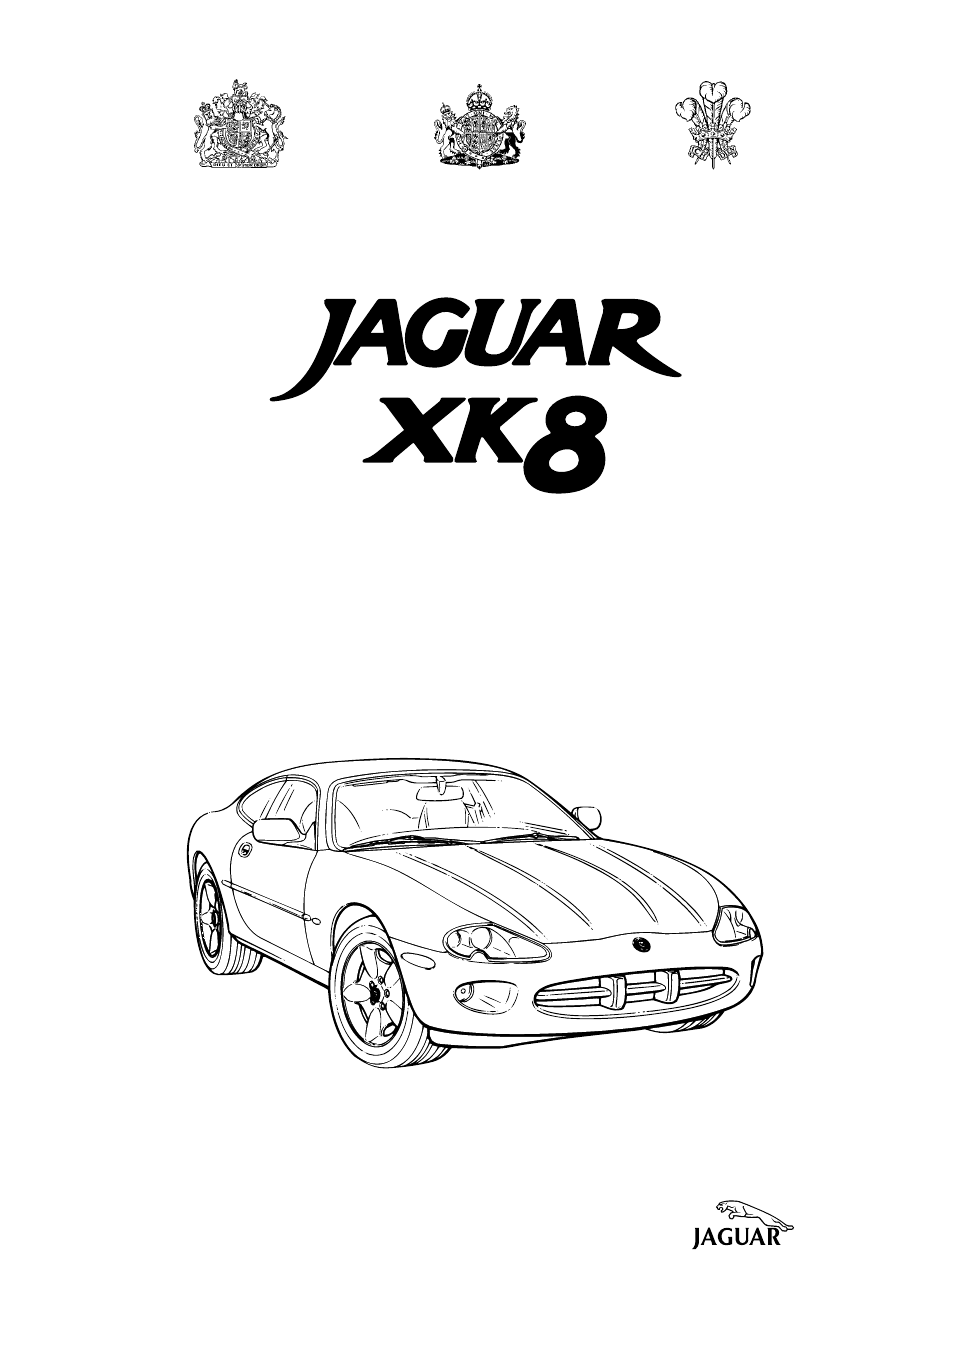 Jaguar Xj8 Fuse Box Location